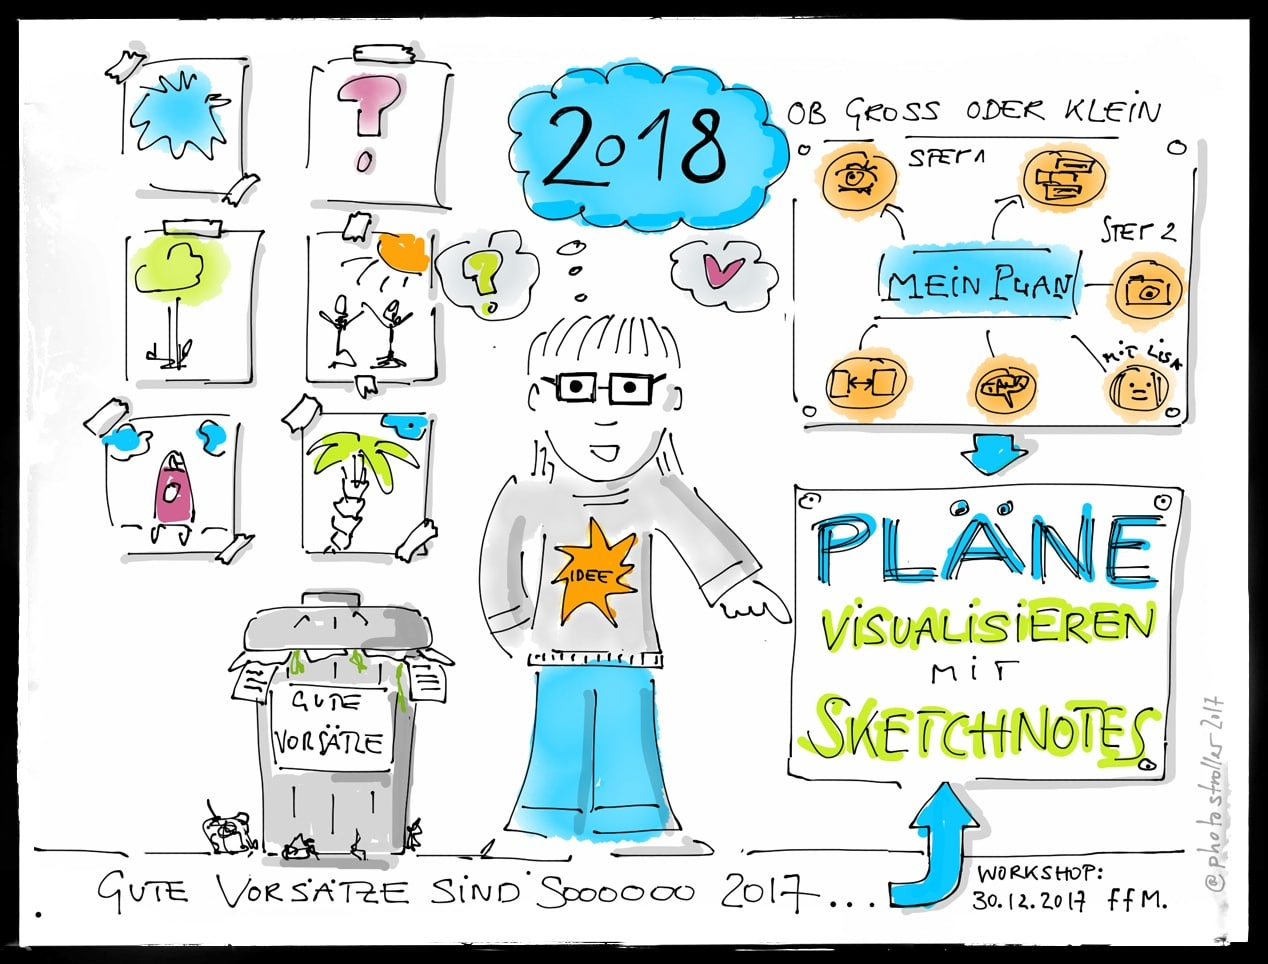 Pläne visualisieren - Sketchnotes Workshop Frankfurt am Main